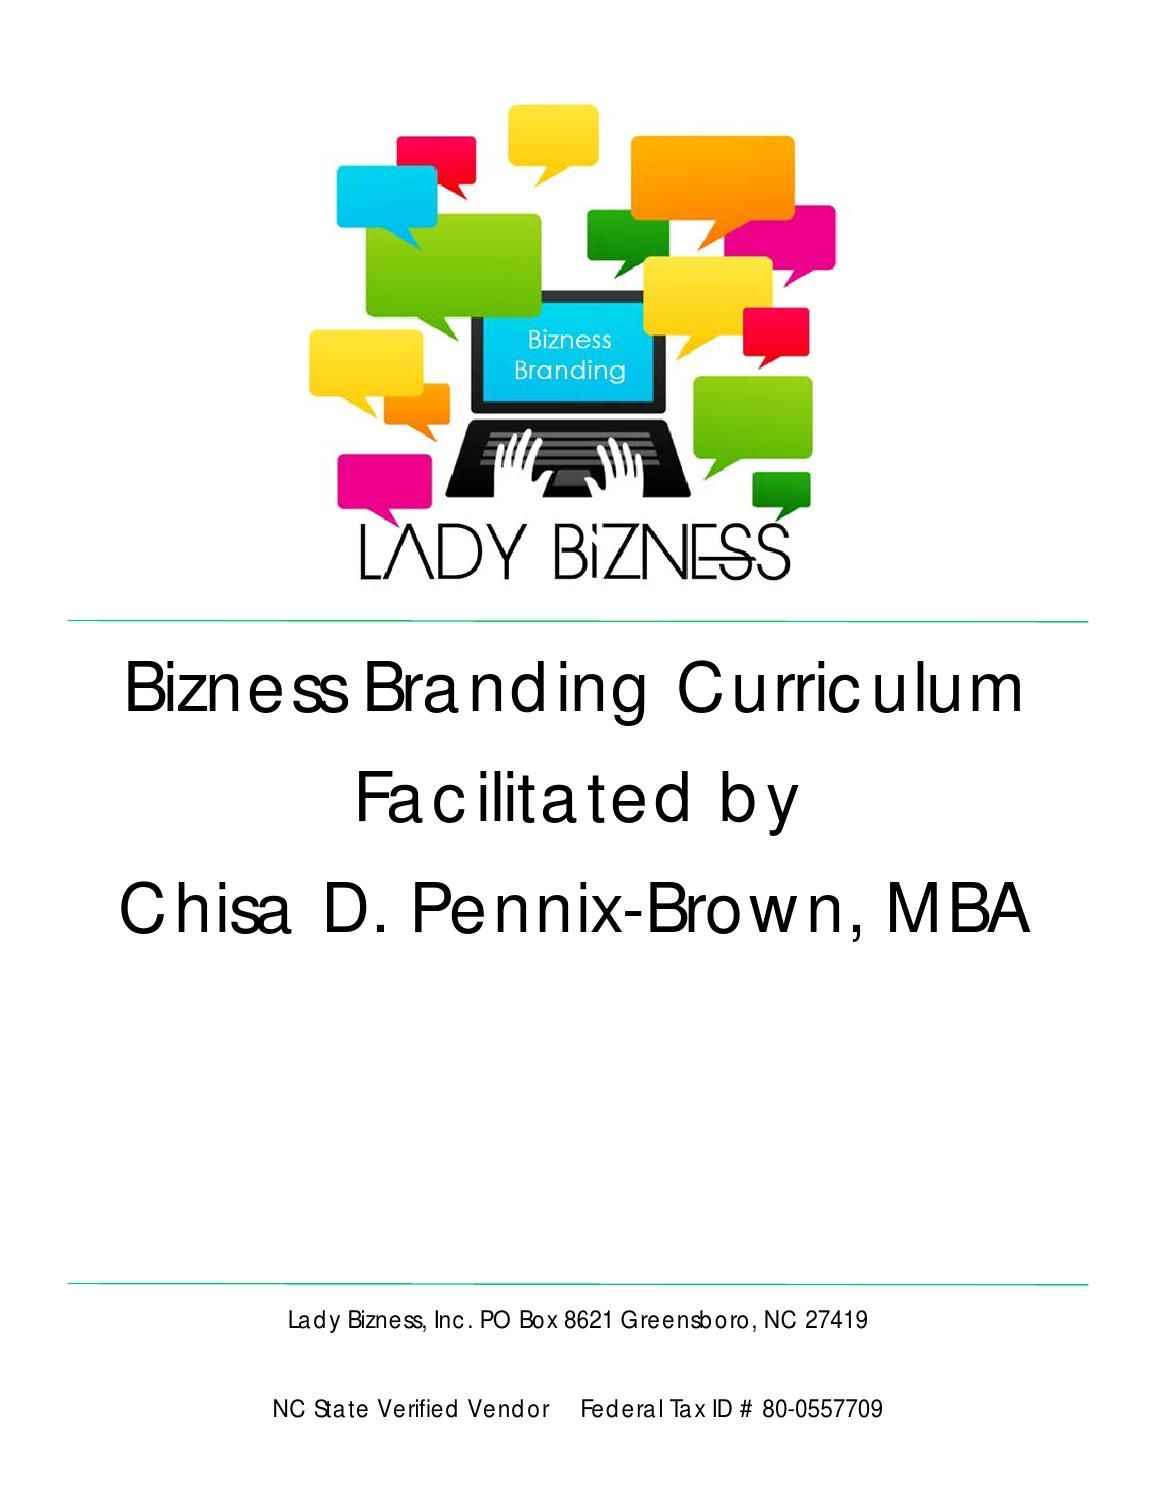 Lady Bizness Curriculum facilitated by Chisa D. Pennix-Brown, MBA.  Please review full listing at http://issuu.com/chisaladybiznesspennix/docs/lb-bb-curiculum/0. Direct any questions and.or booking to LadyBiznessOnline@Yahoo.com #LadyBizness #BiznessBranding